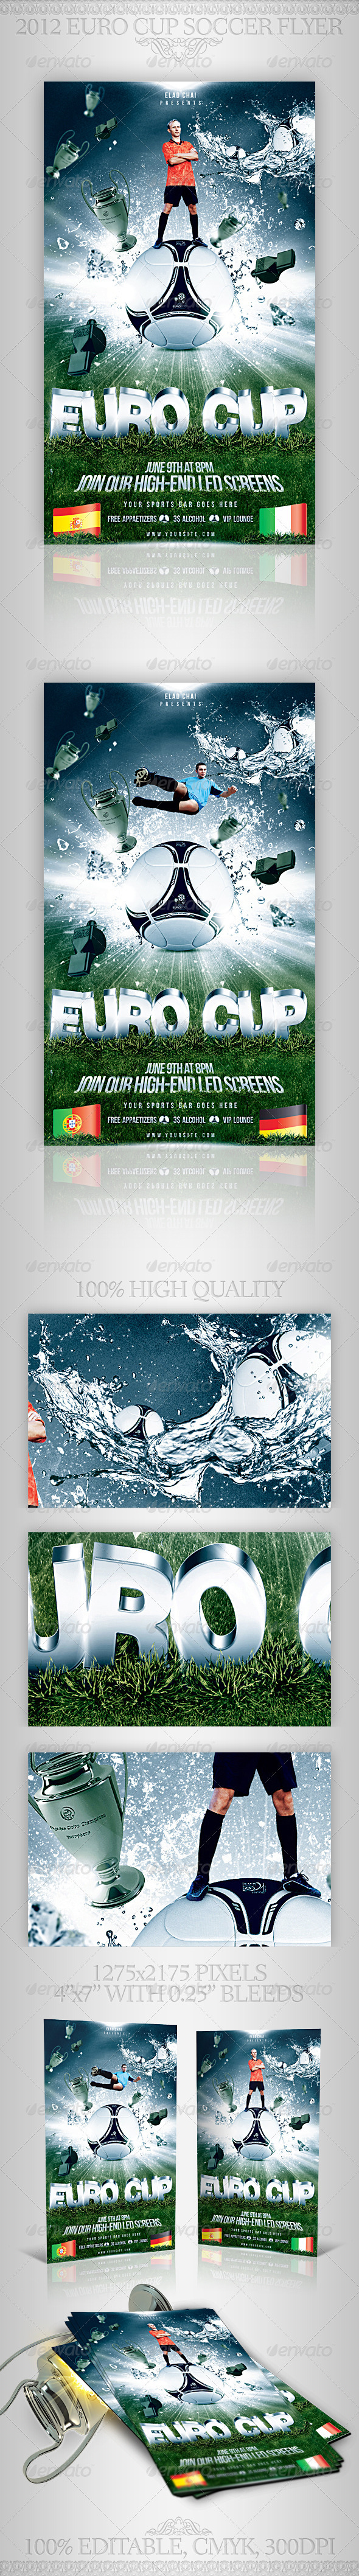 Soccer Football Cup Flyer Template Graphicriver A Modern Fresh